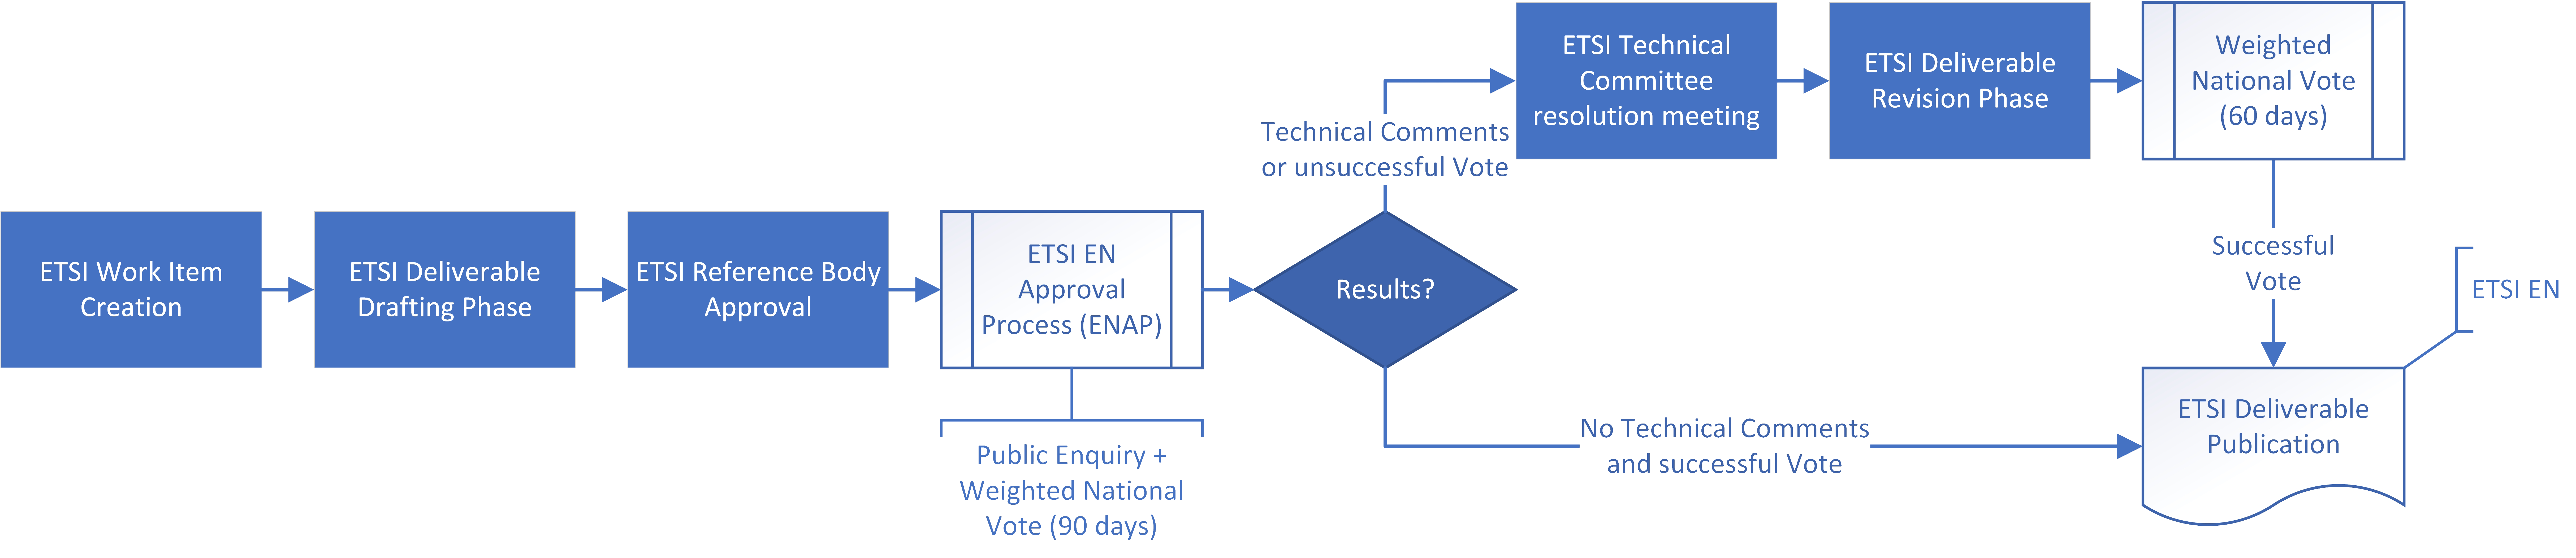 Description of publication process from work item creation over drafting, approval and EN Approval process to publication of ETSI EN